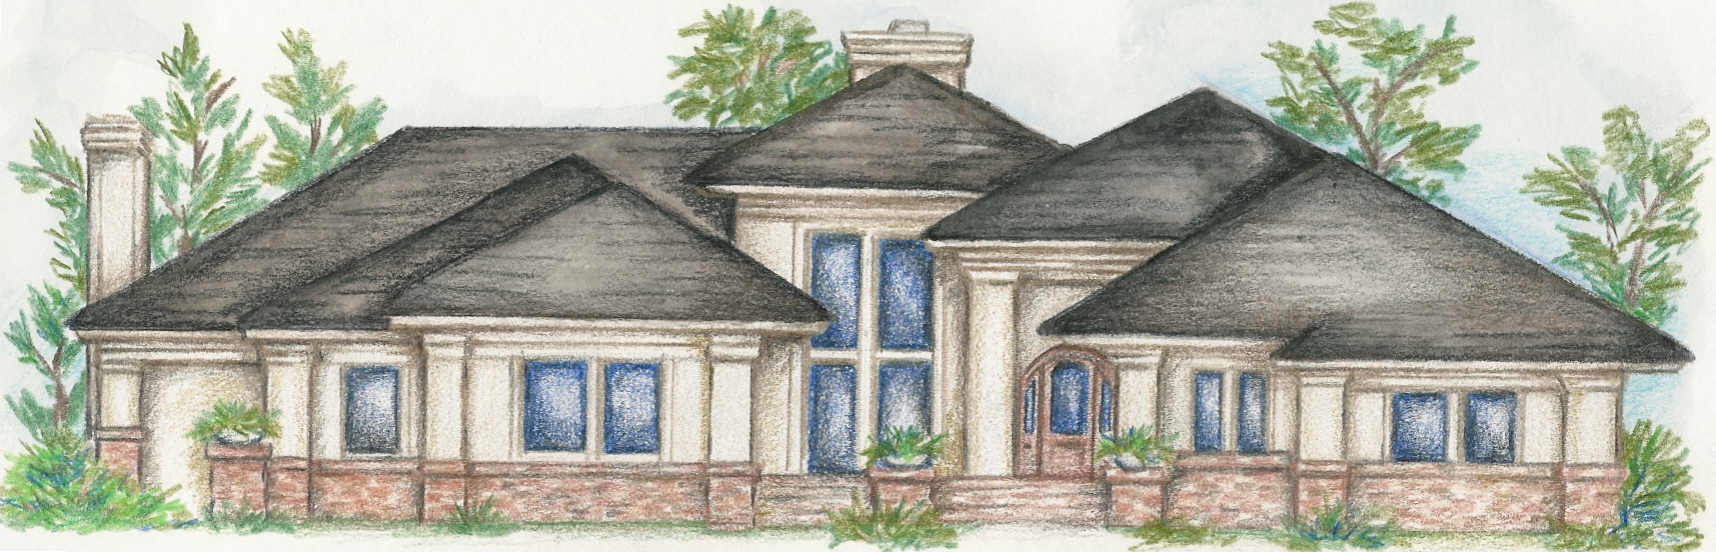 Custom single story home plans one story luxury home for Custom single story homes